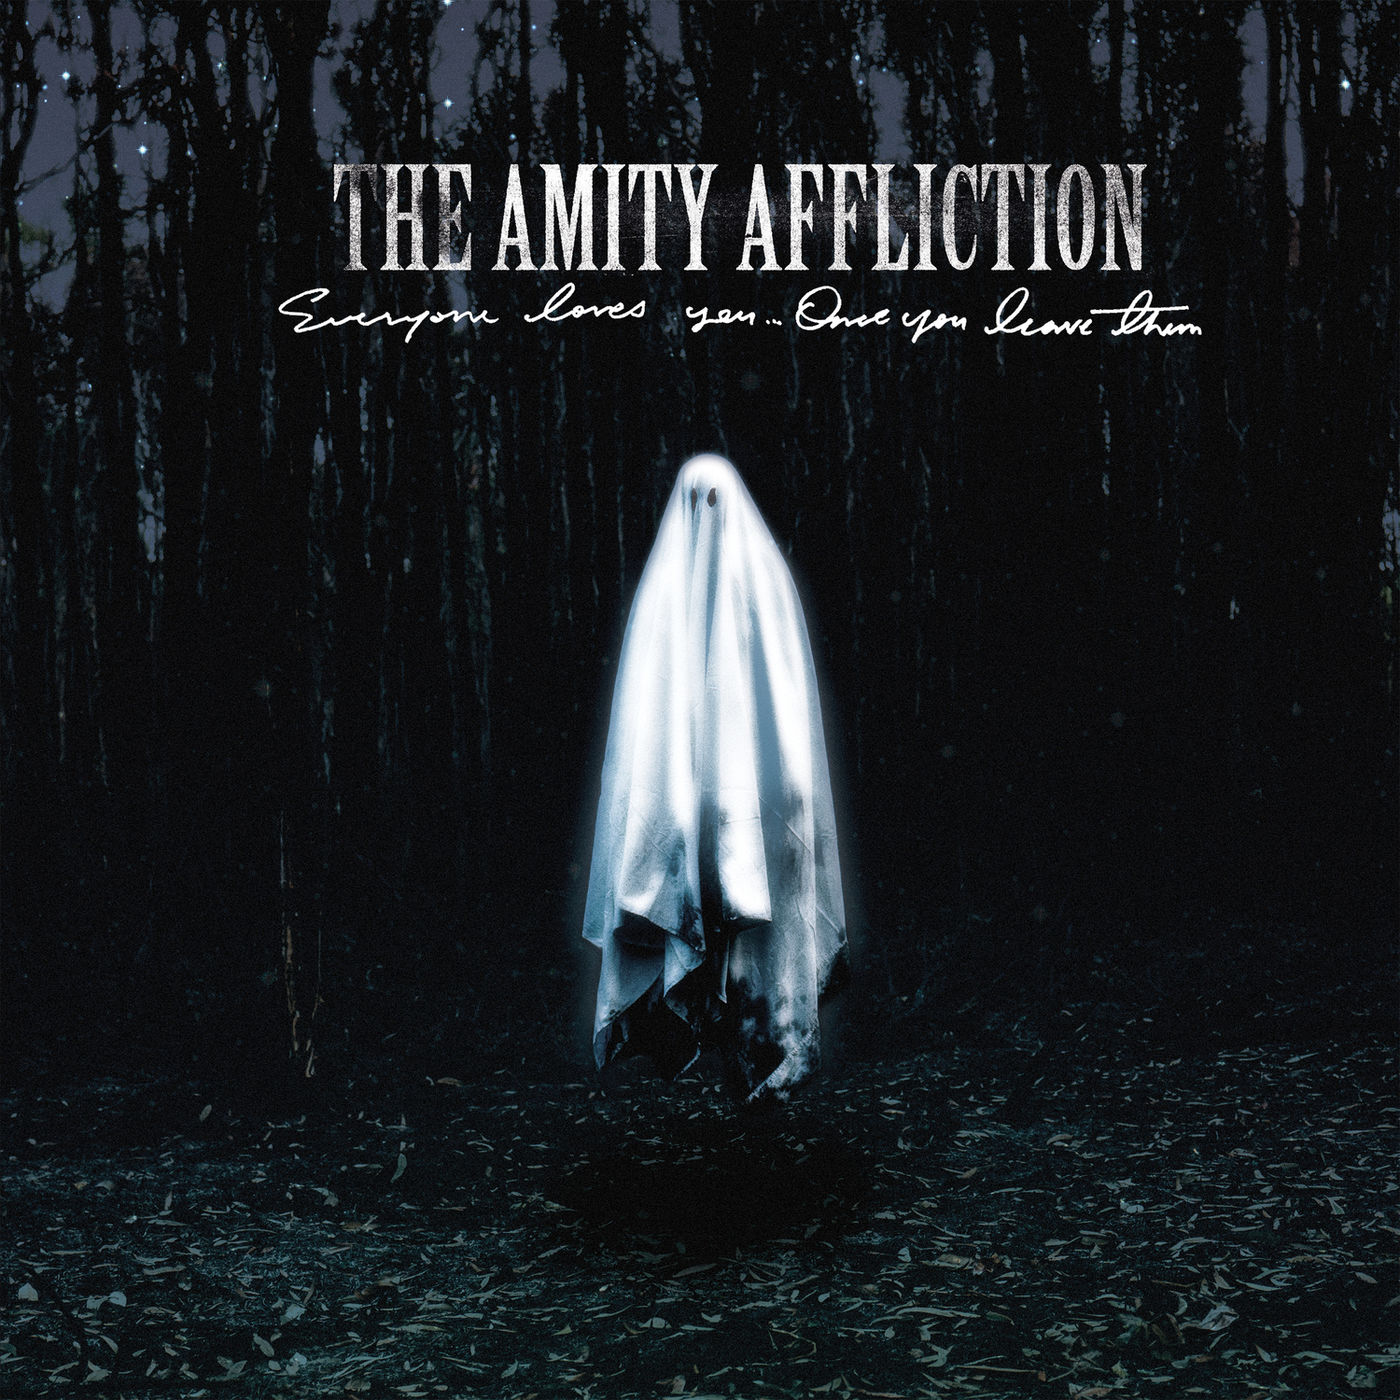 The Amity Affliction - Soak Me in Bleach [single] (2020)